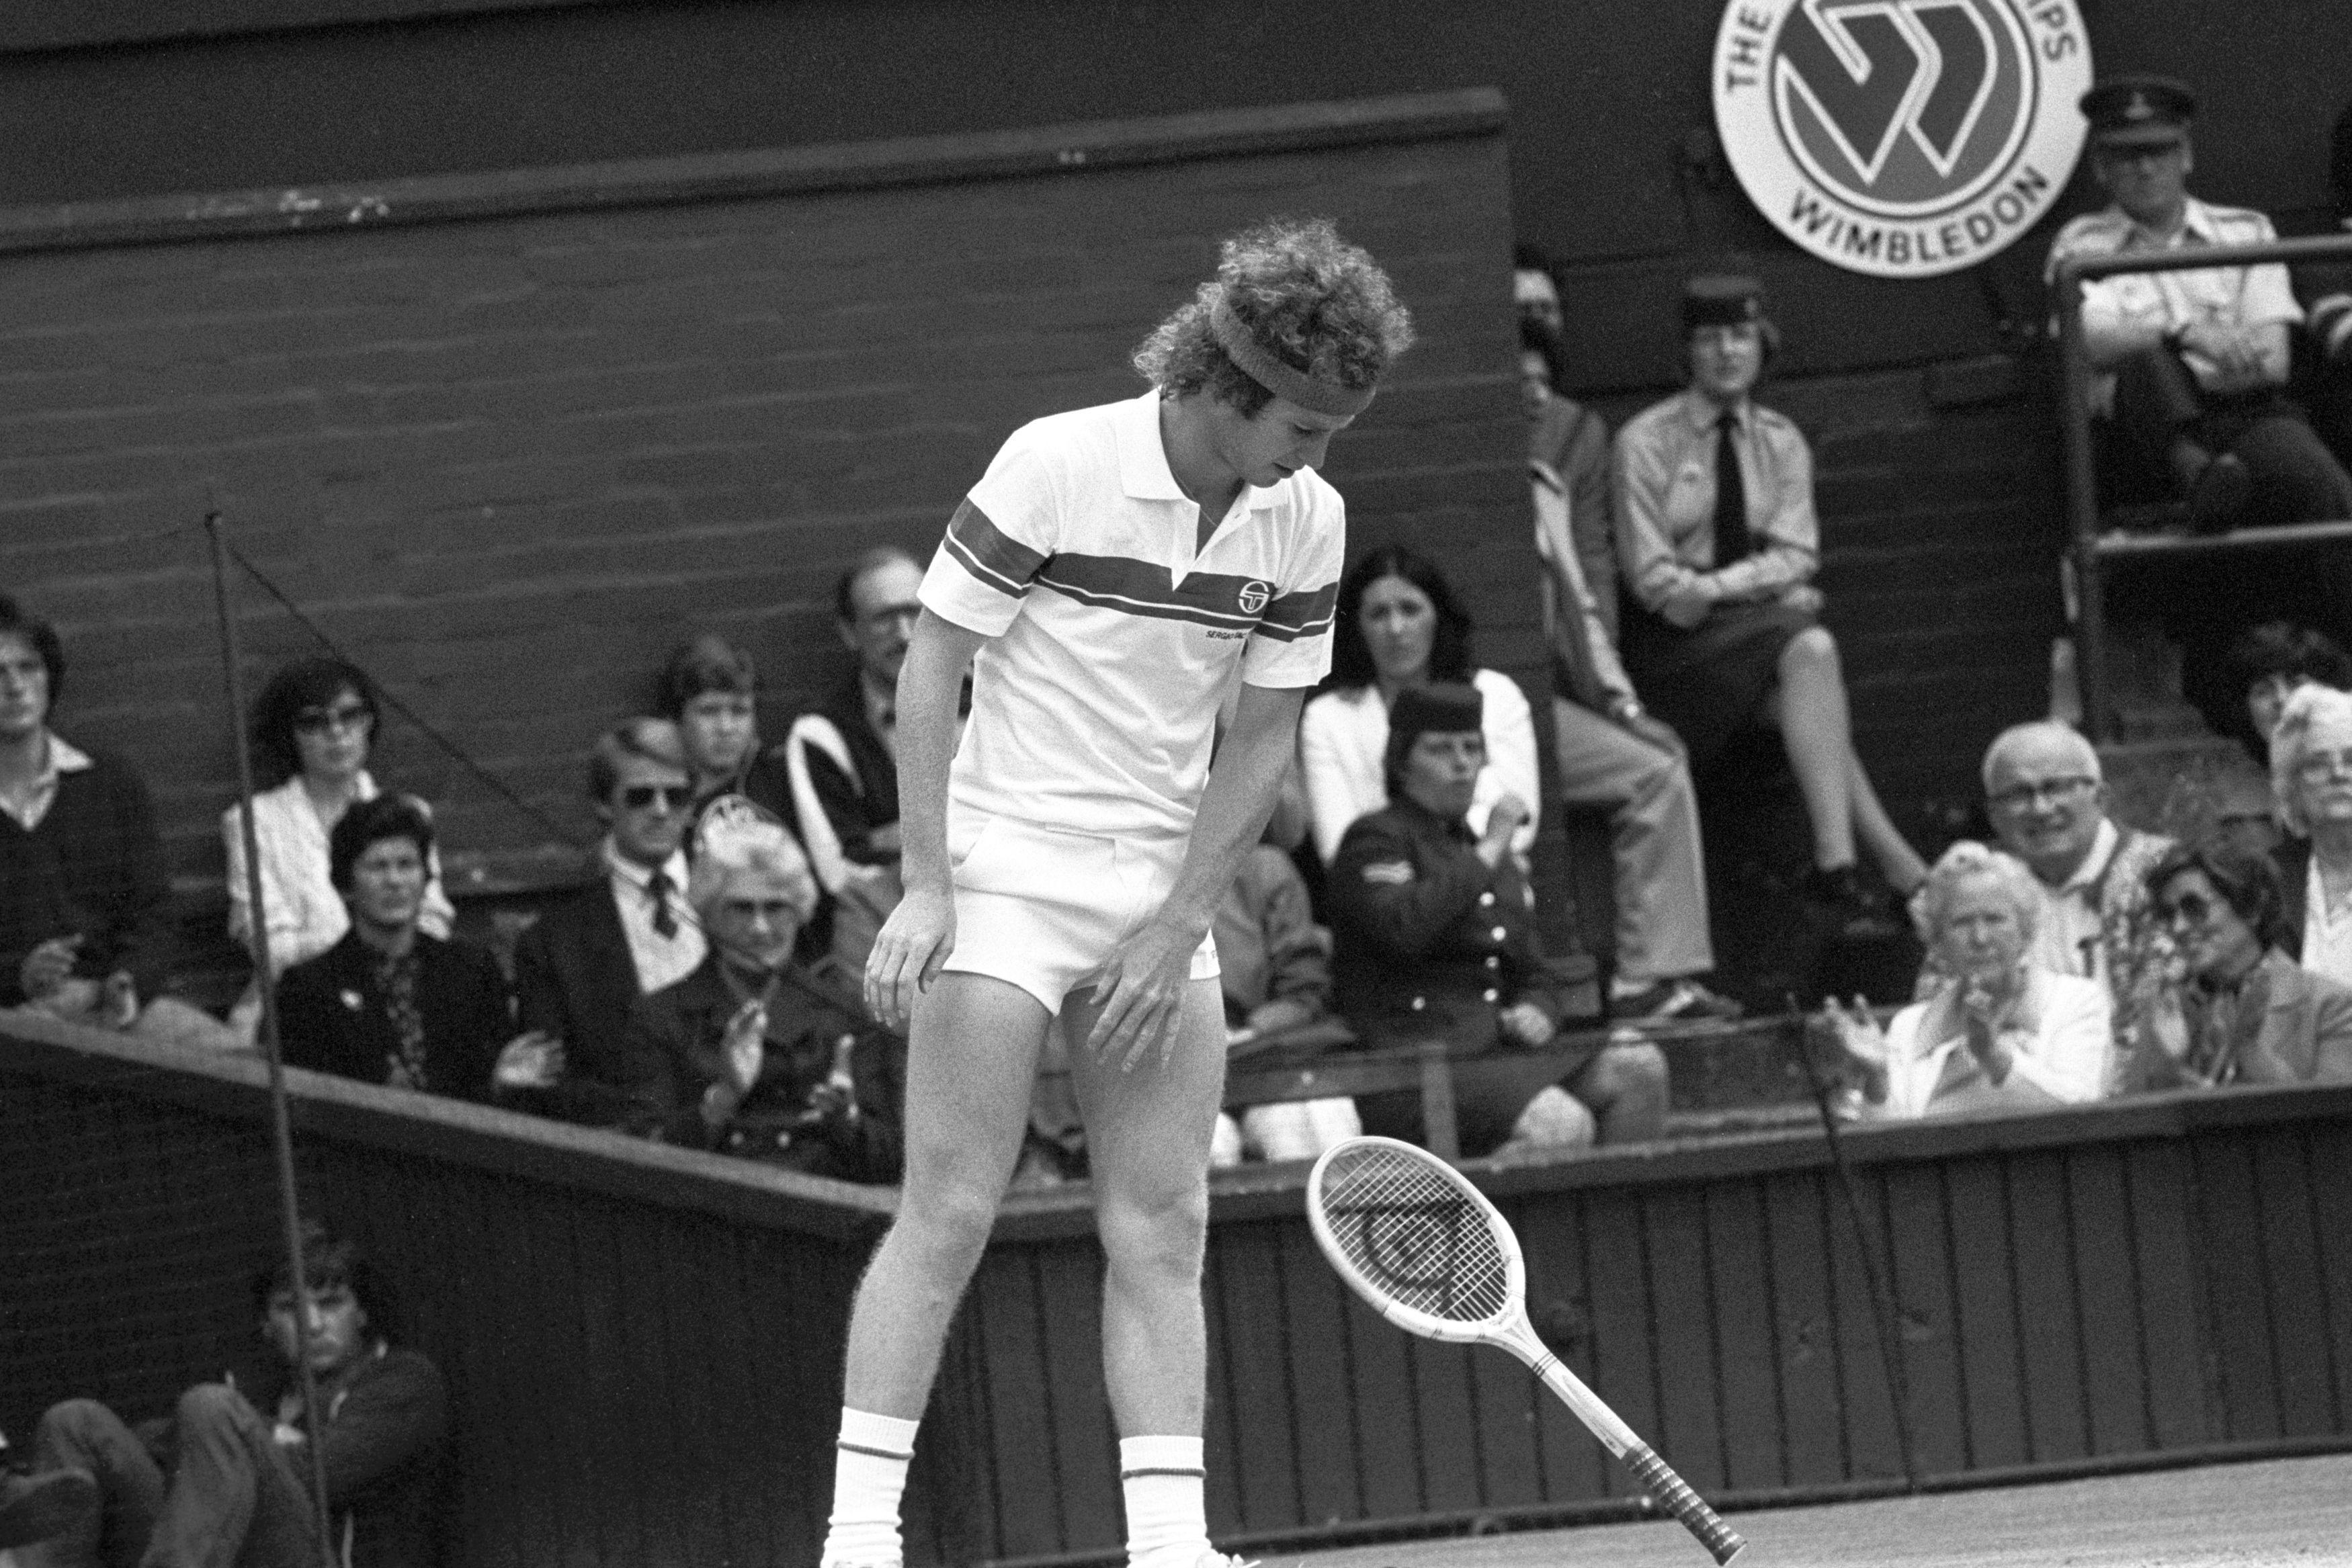 John McEnroe is famous for his outbursts and arguments with umpires and fans